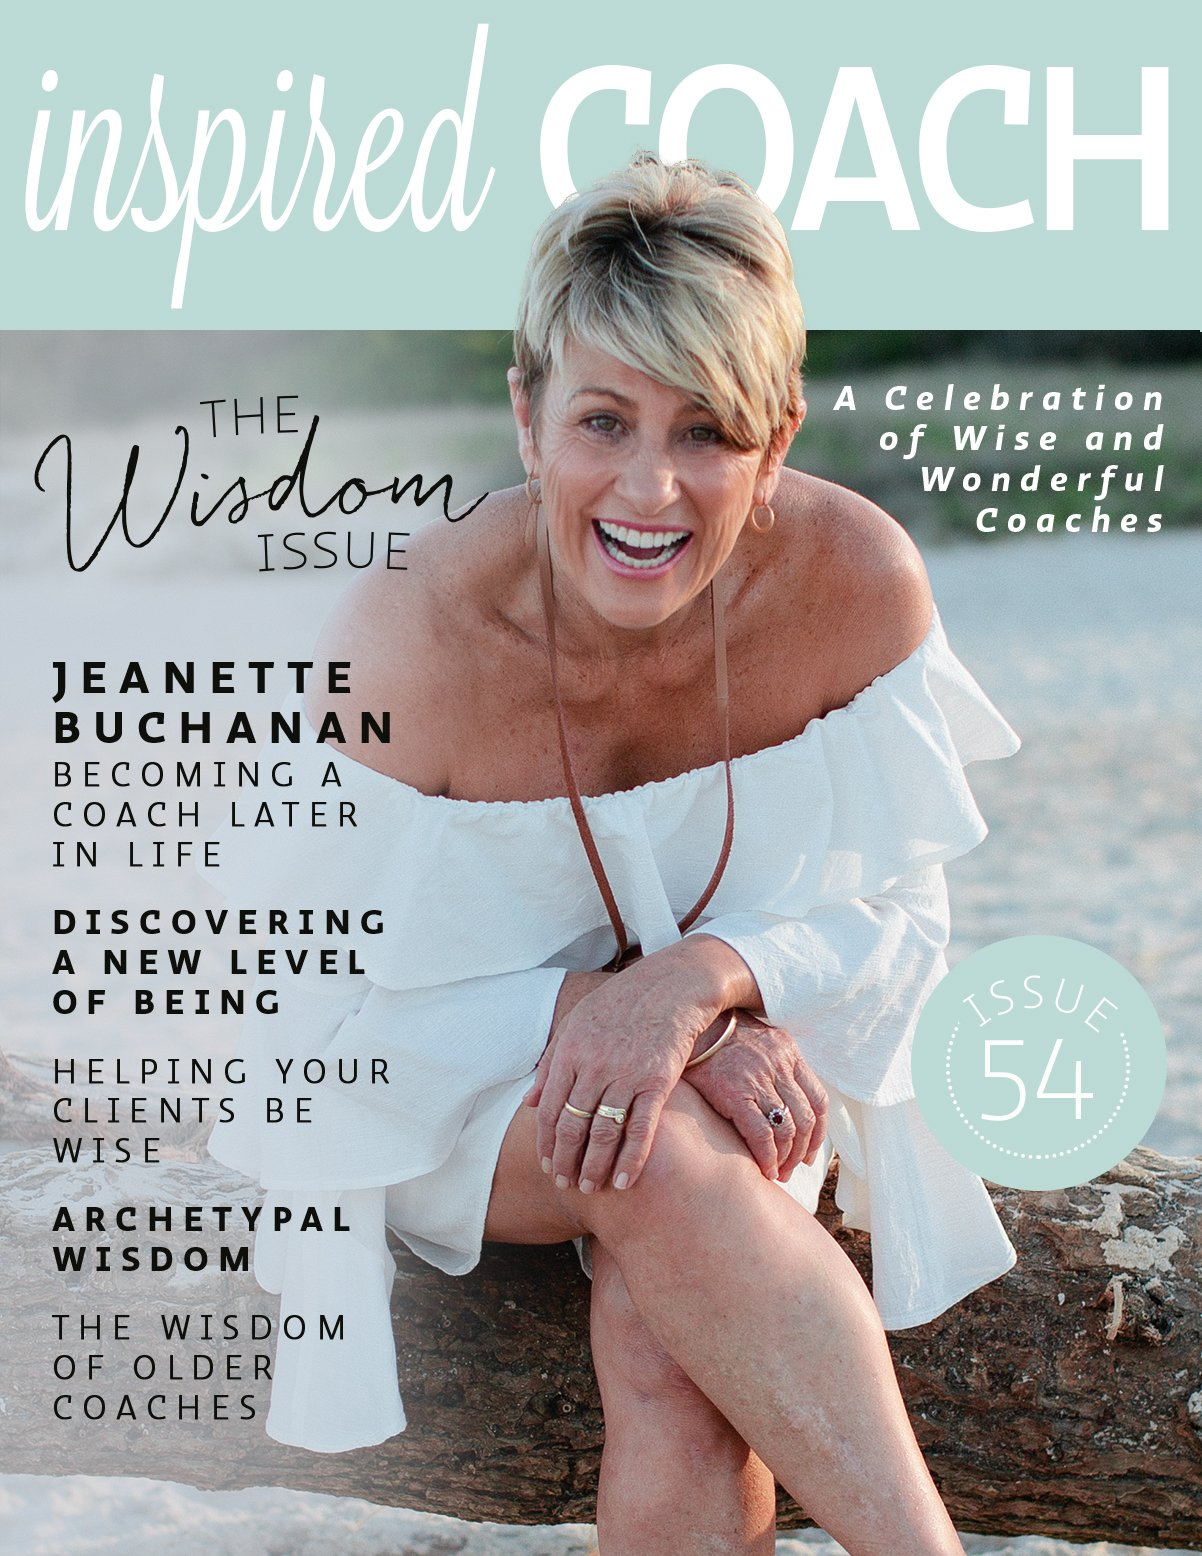 inspired COACH Magazine with Jeanette Buchanan